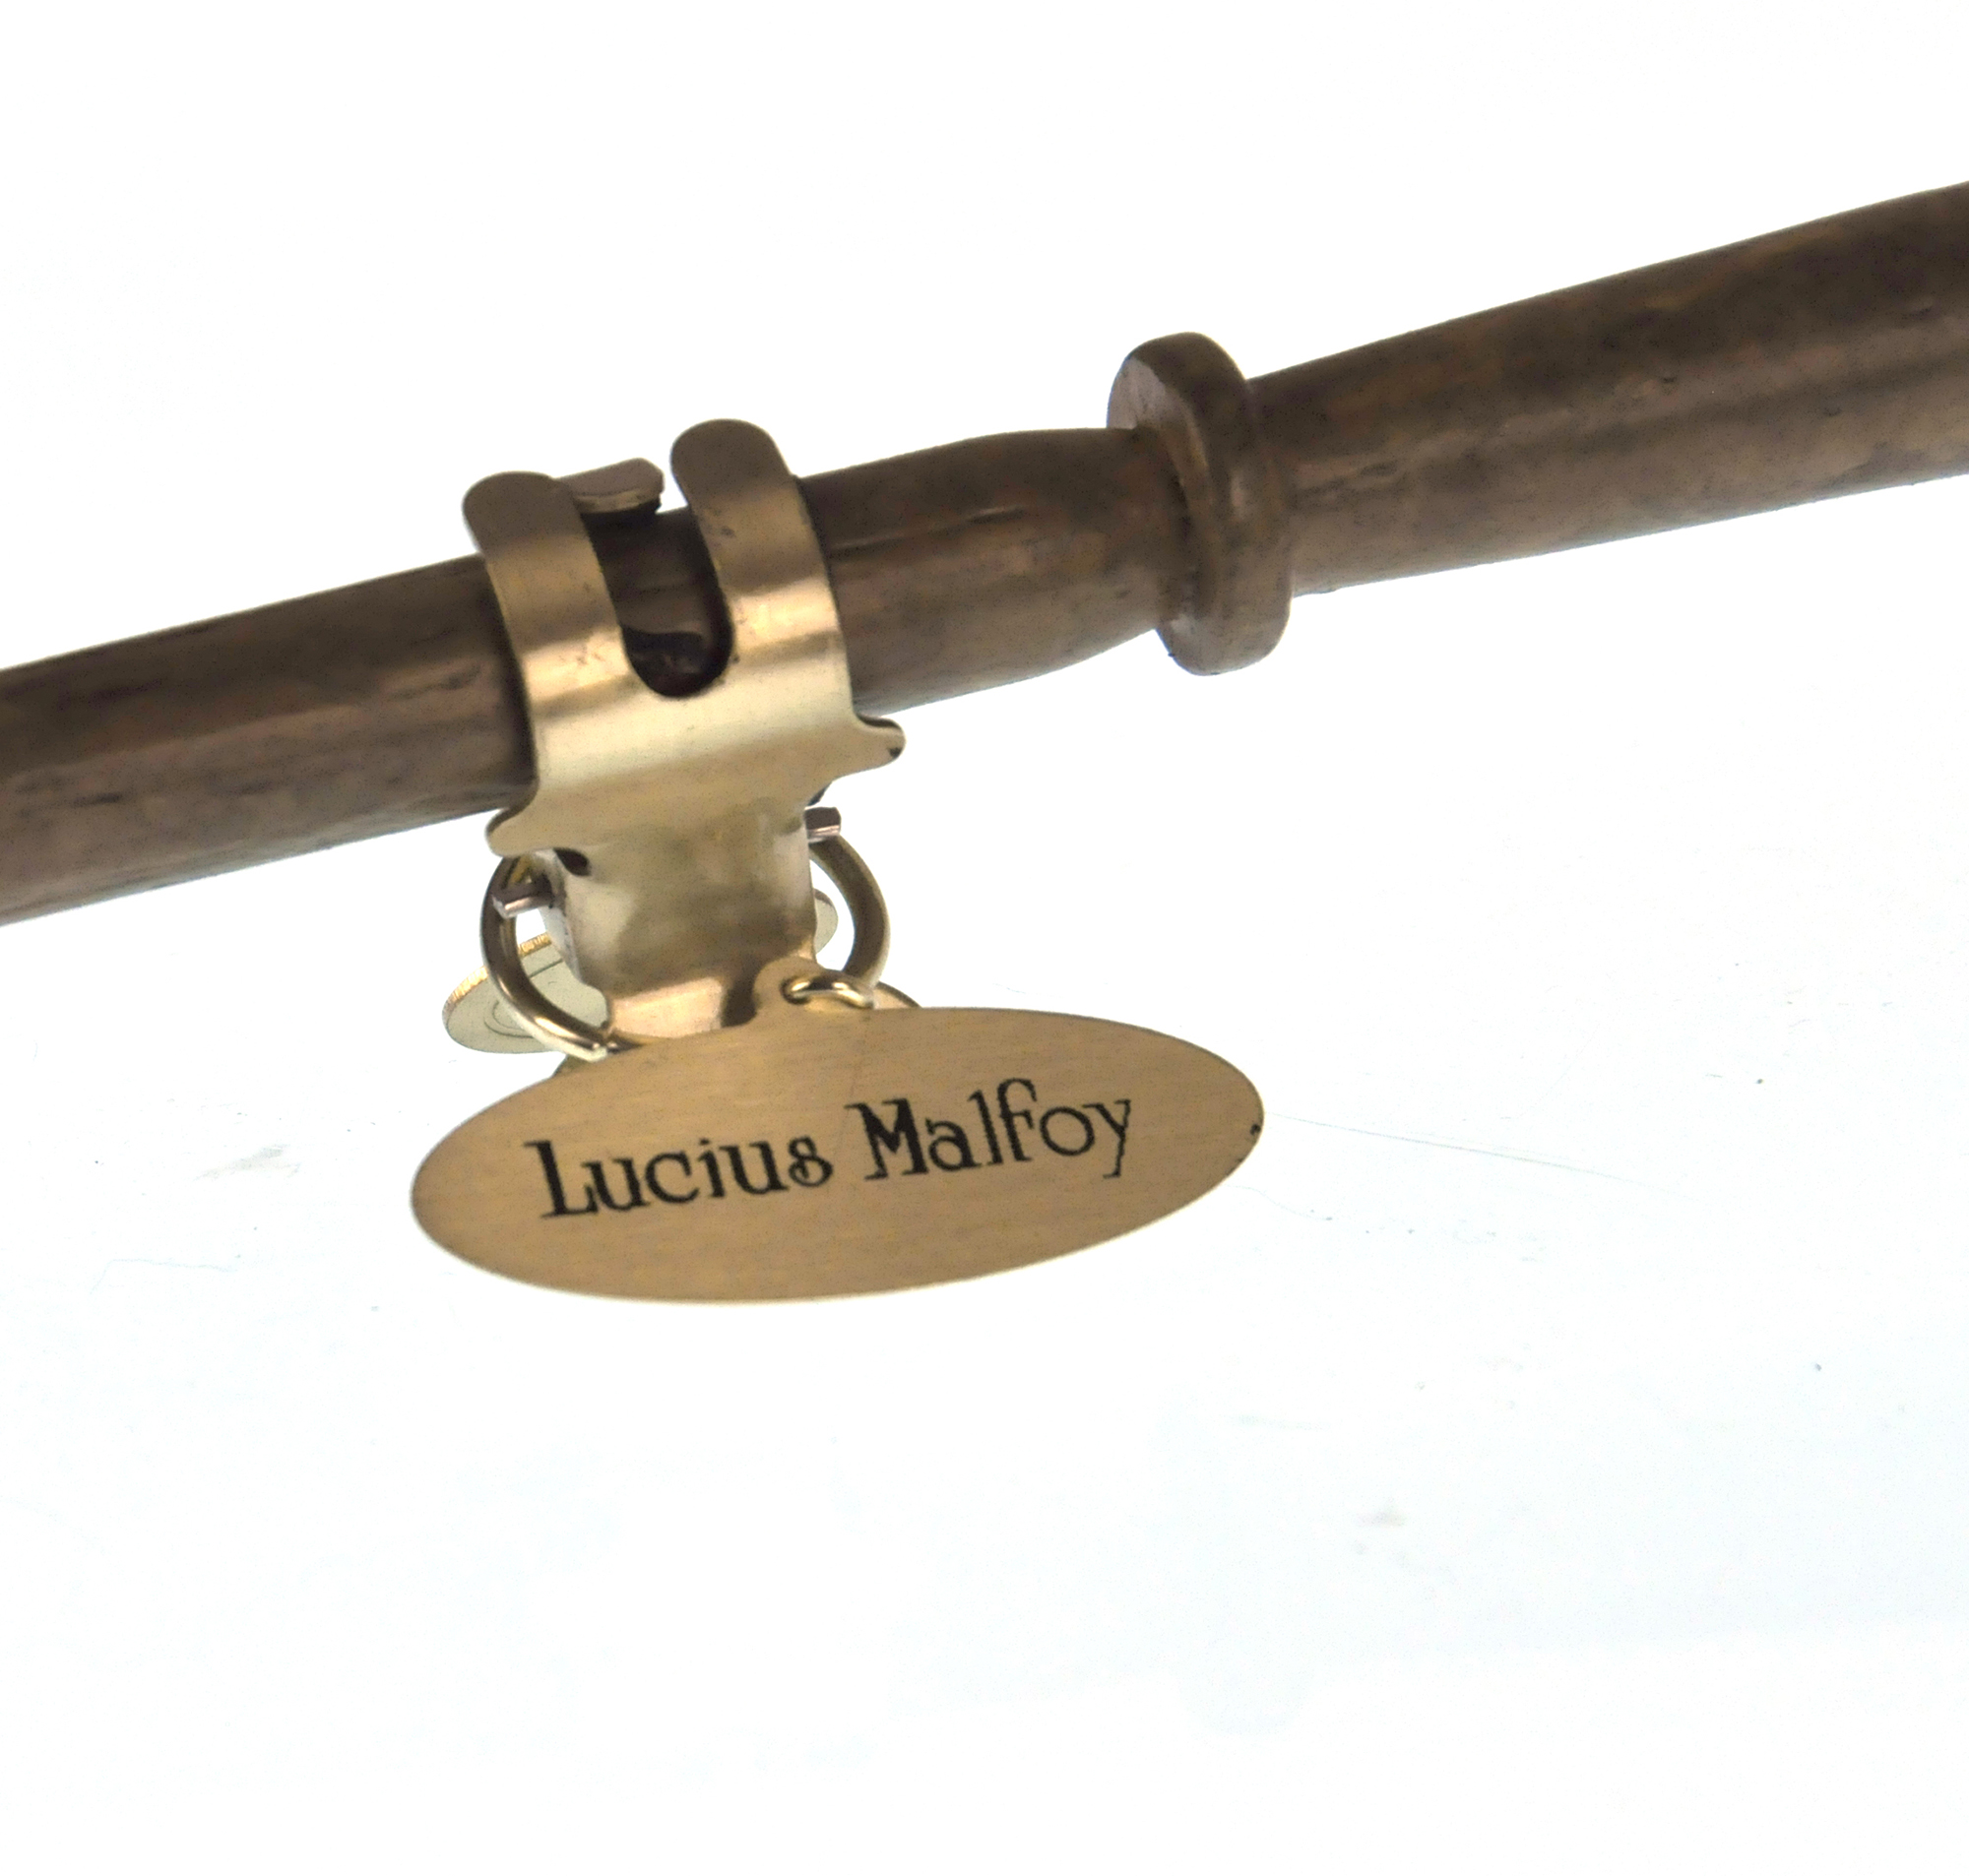 Harry Potter Replica Lucius Malfoy Wand | Pink Cat Shop